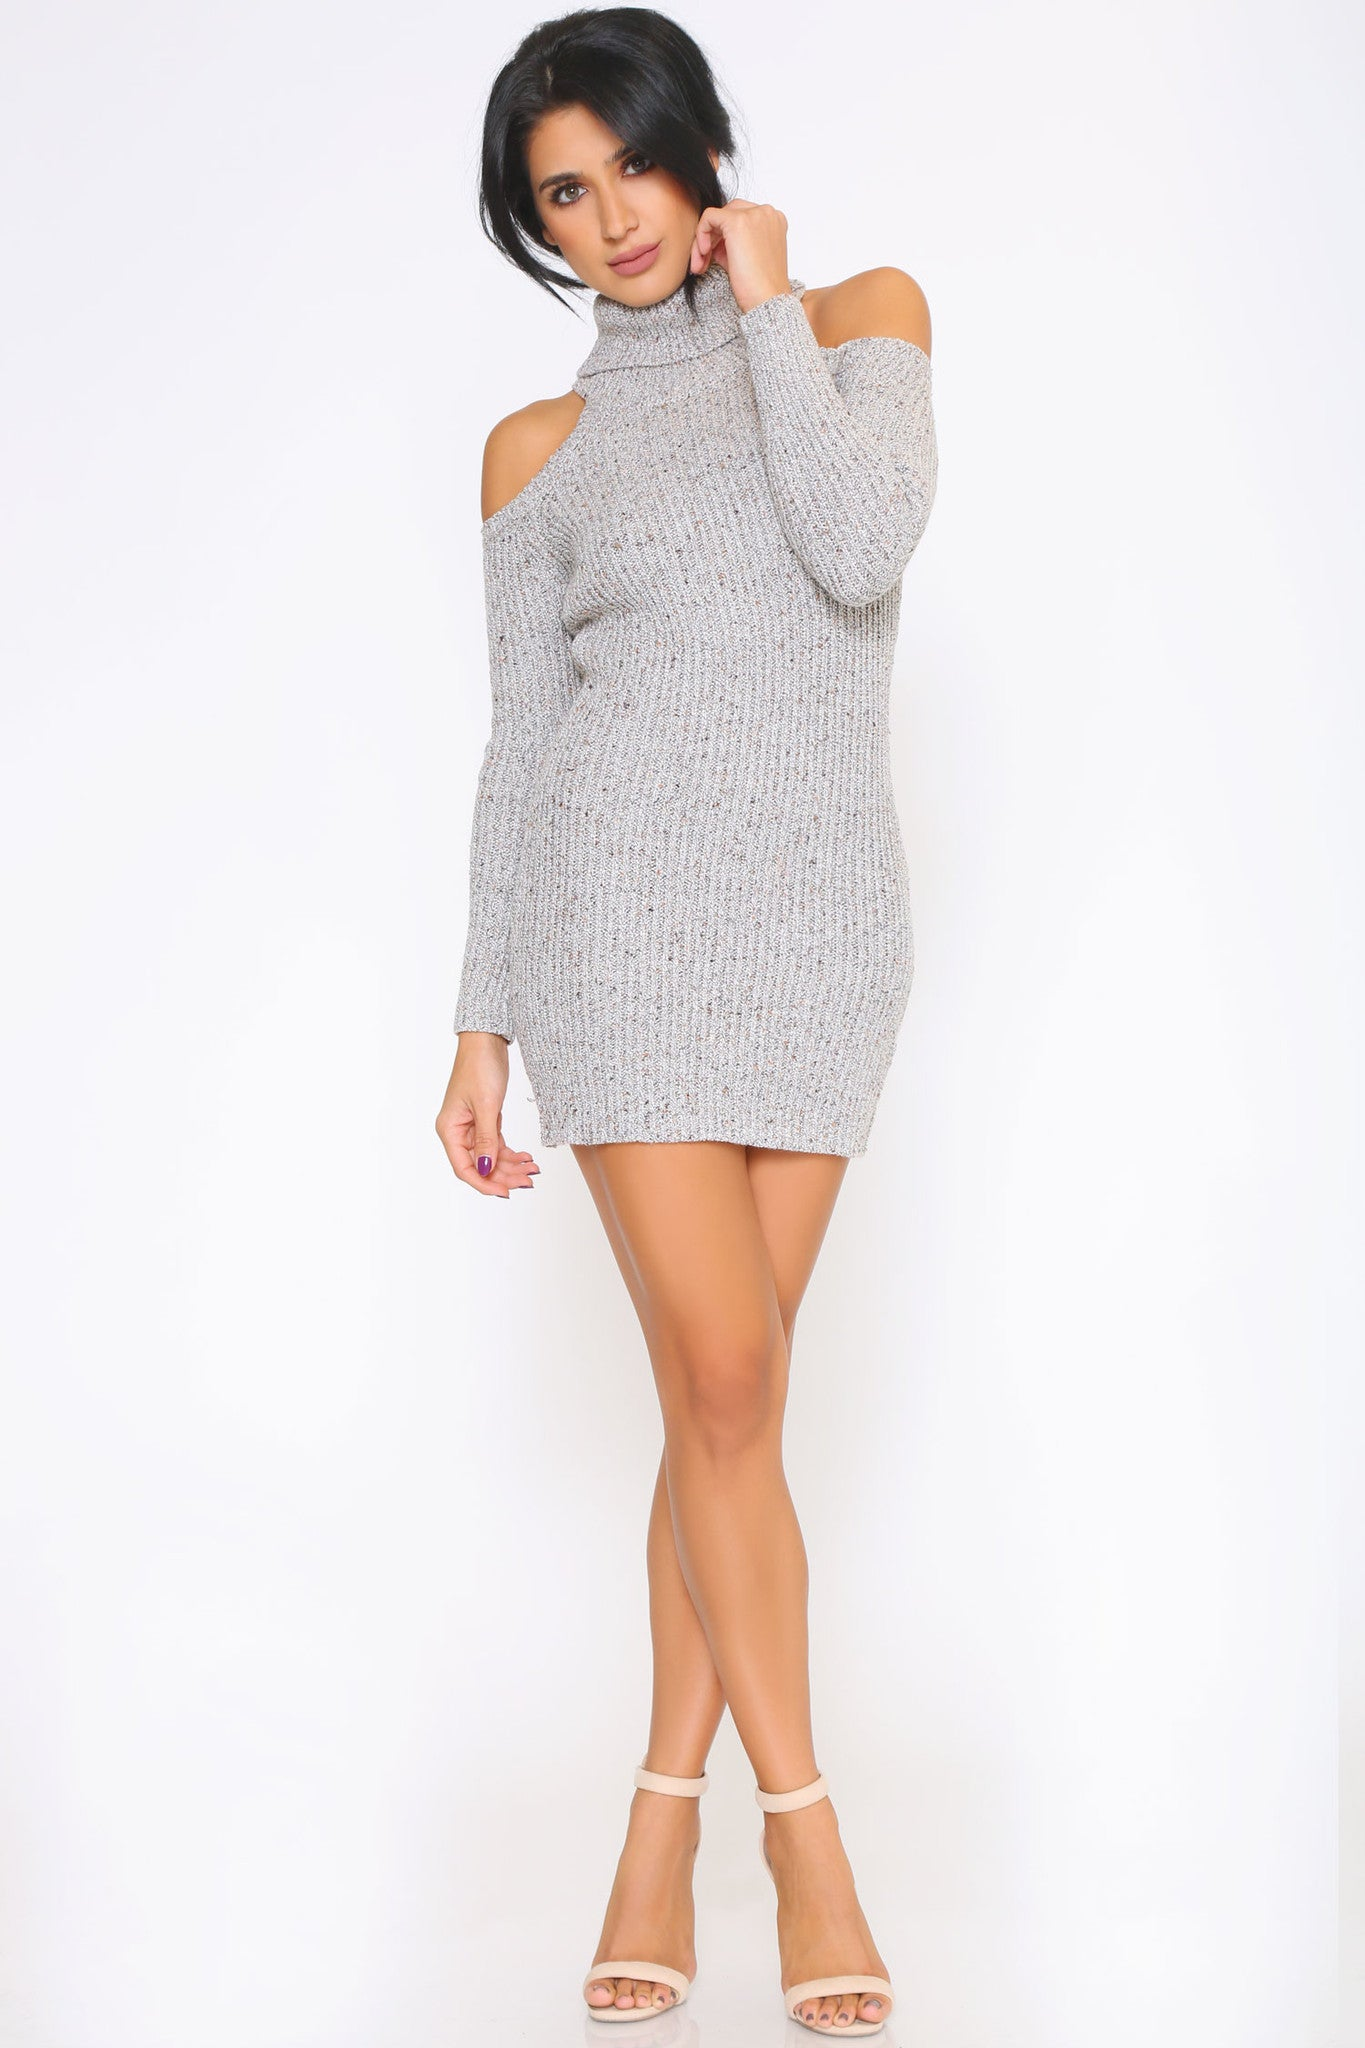 HAZEL SWEATER DRESS - Glam Envy - 1